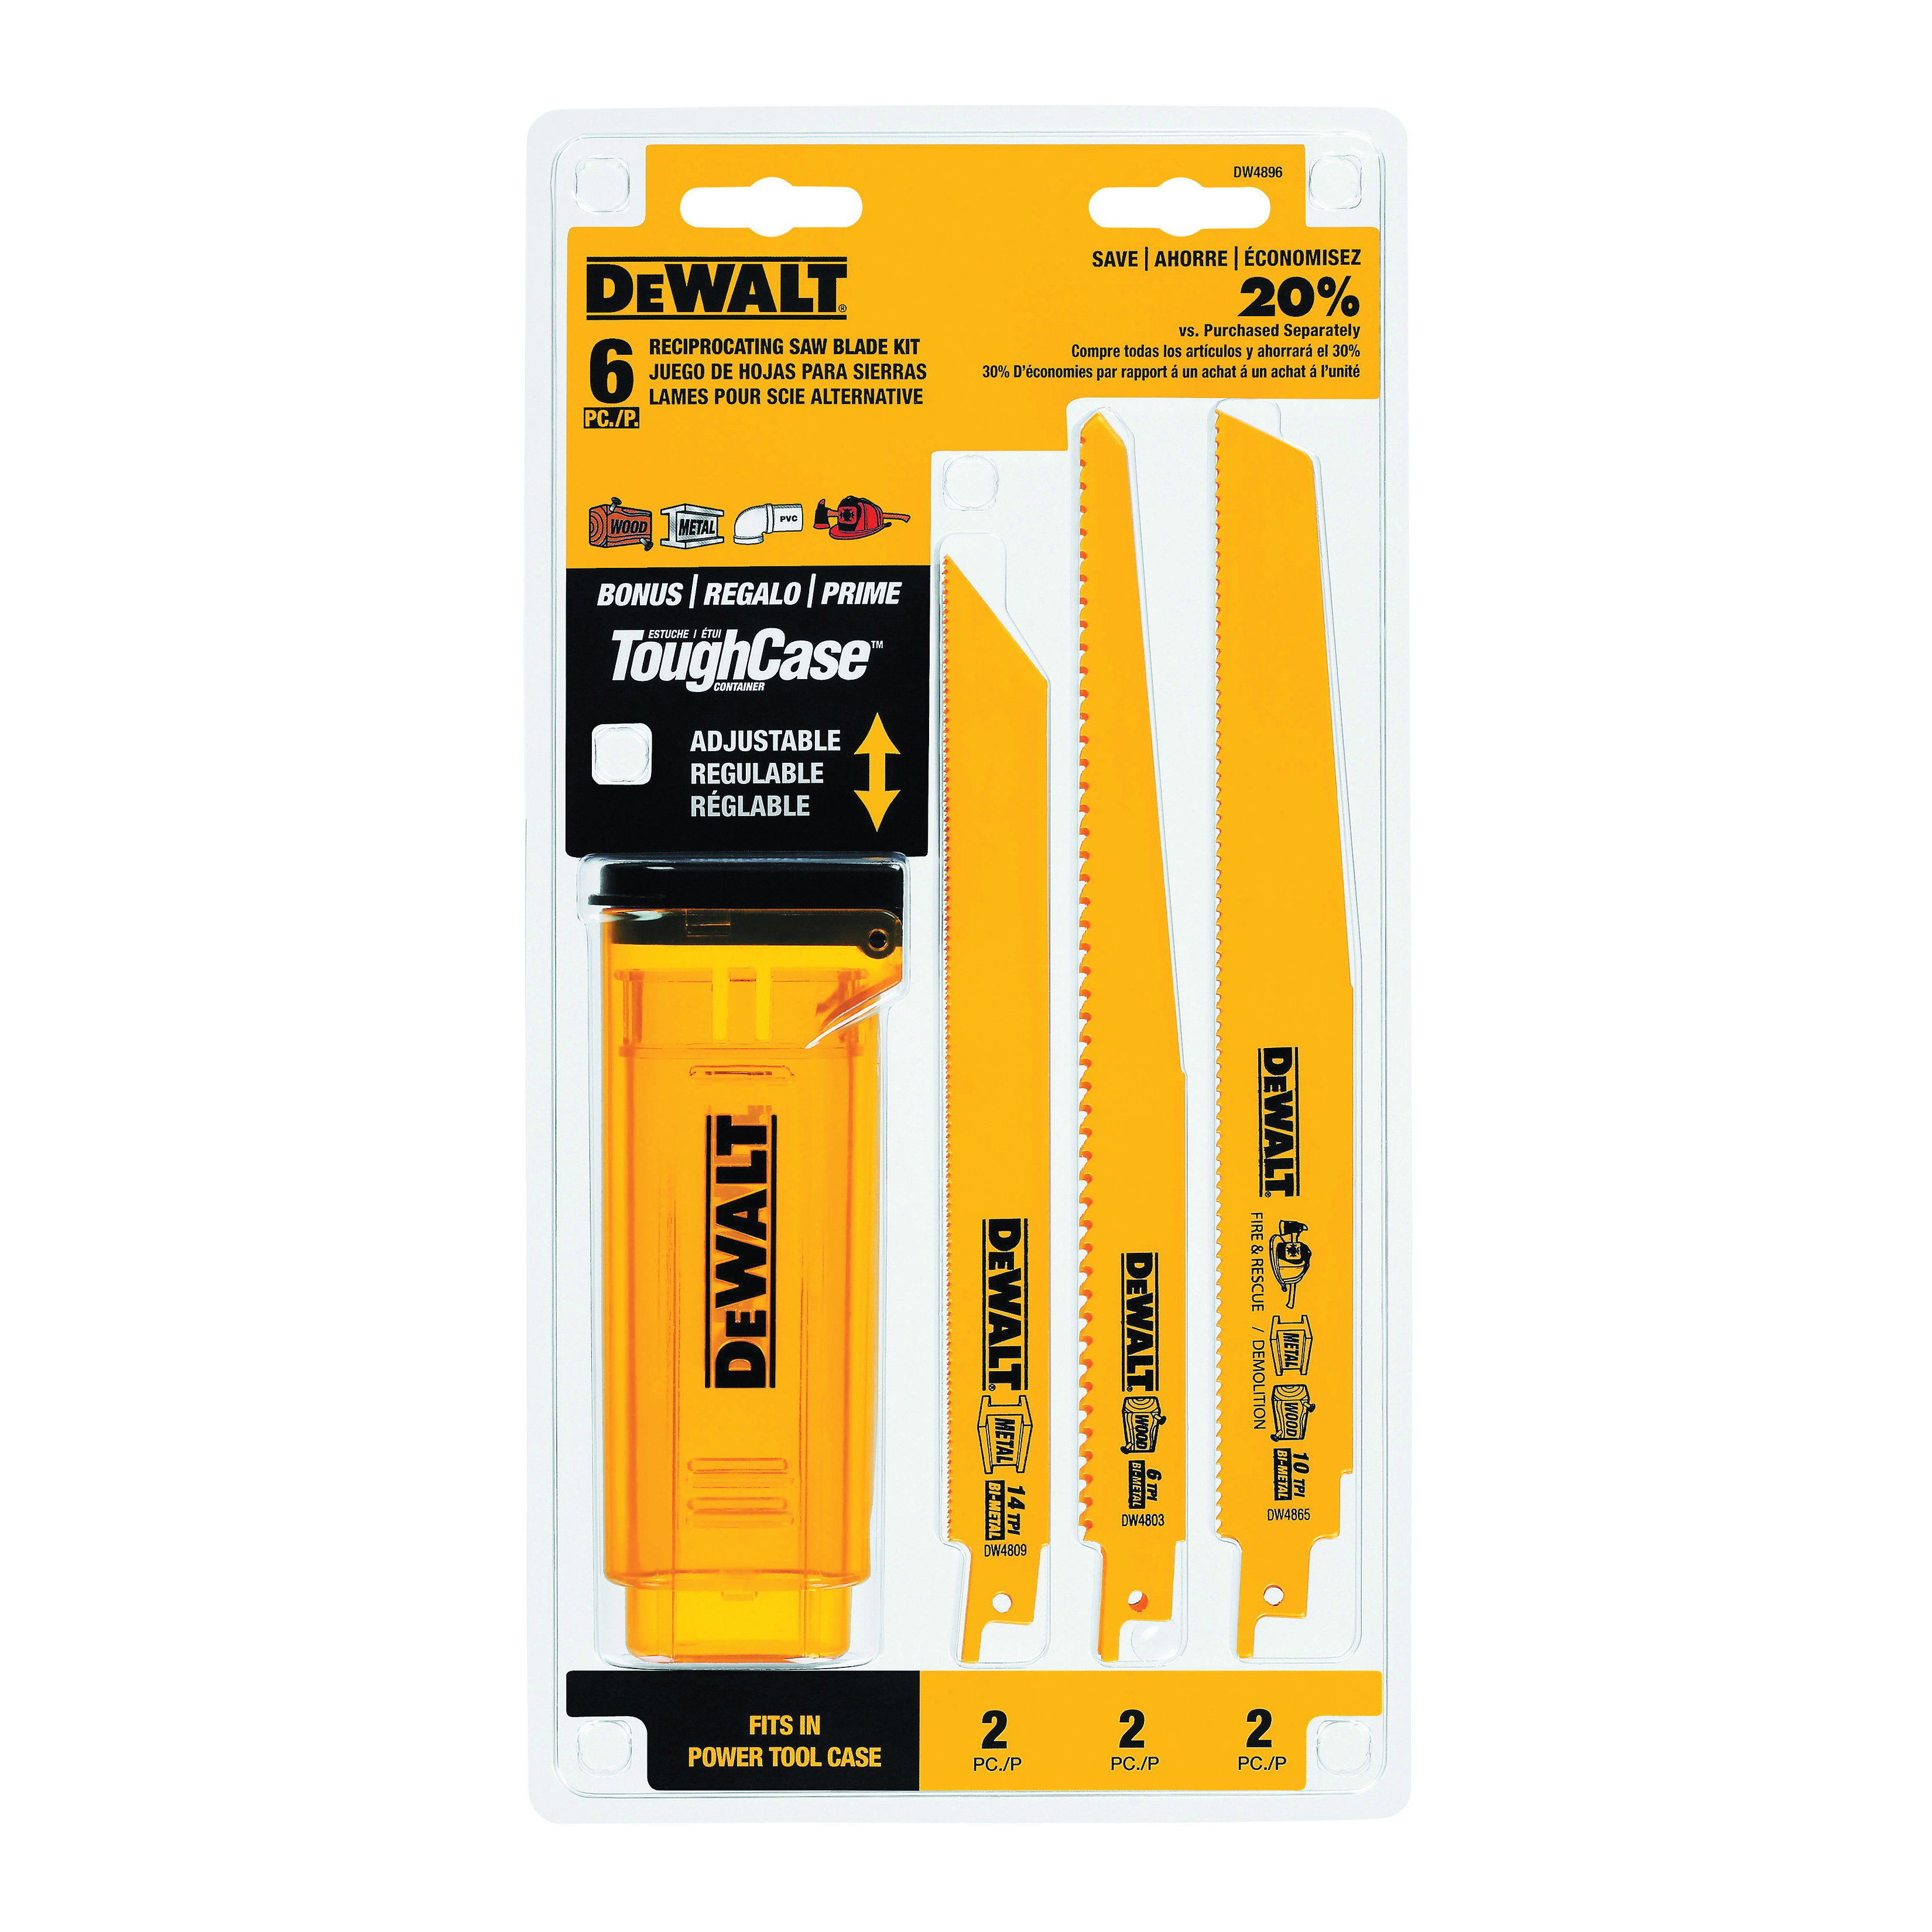 Picture of DeWALT DW4896 Reciprocating Saw Blade Set, 6 -Piece, Bi-Metal, Yellow, Anti-Stick Coated